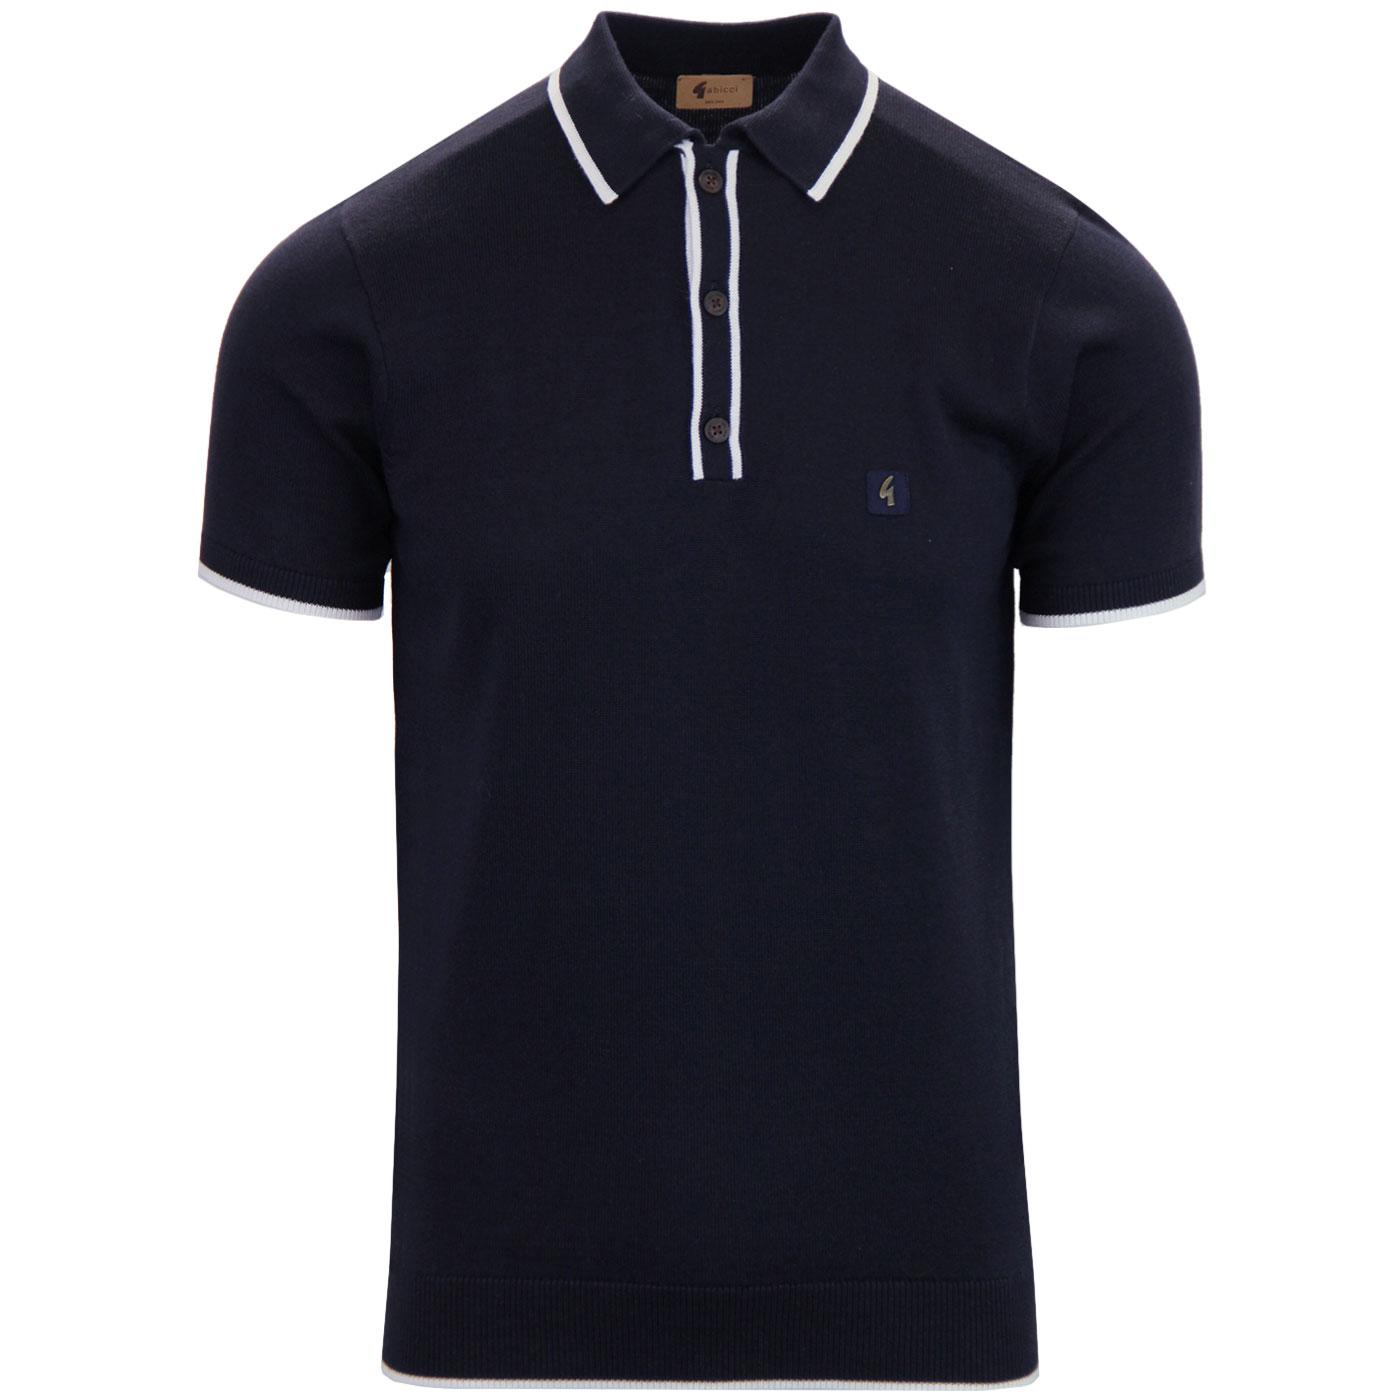 eaa430a2d GABICCI VINTAGE Lineker Retro Mod Tipped Knit Polo in Navy